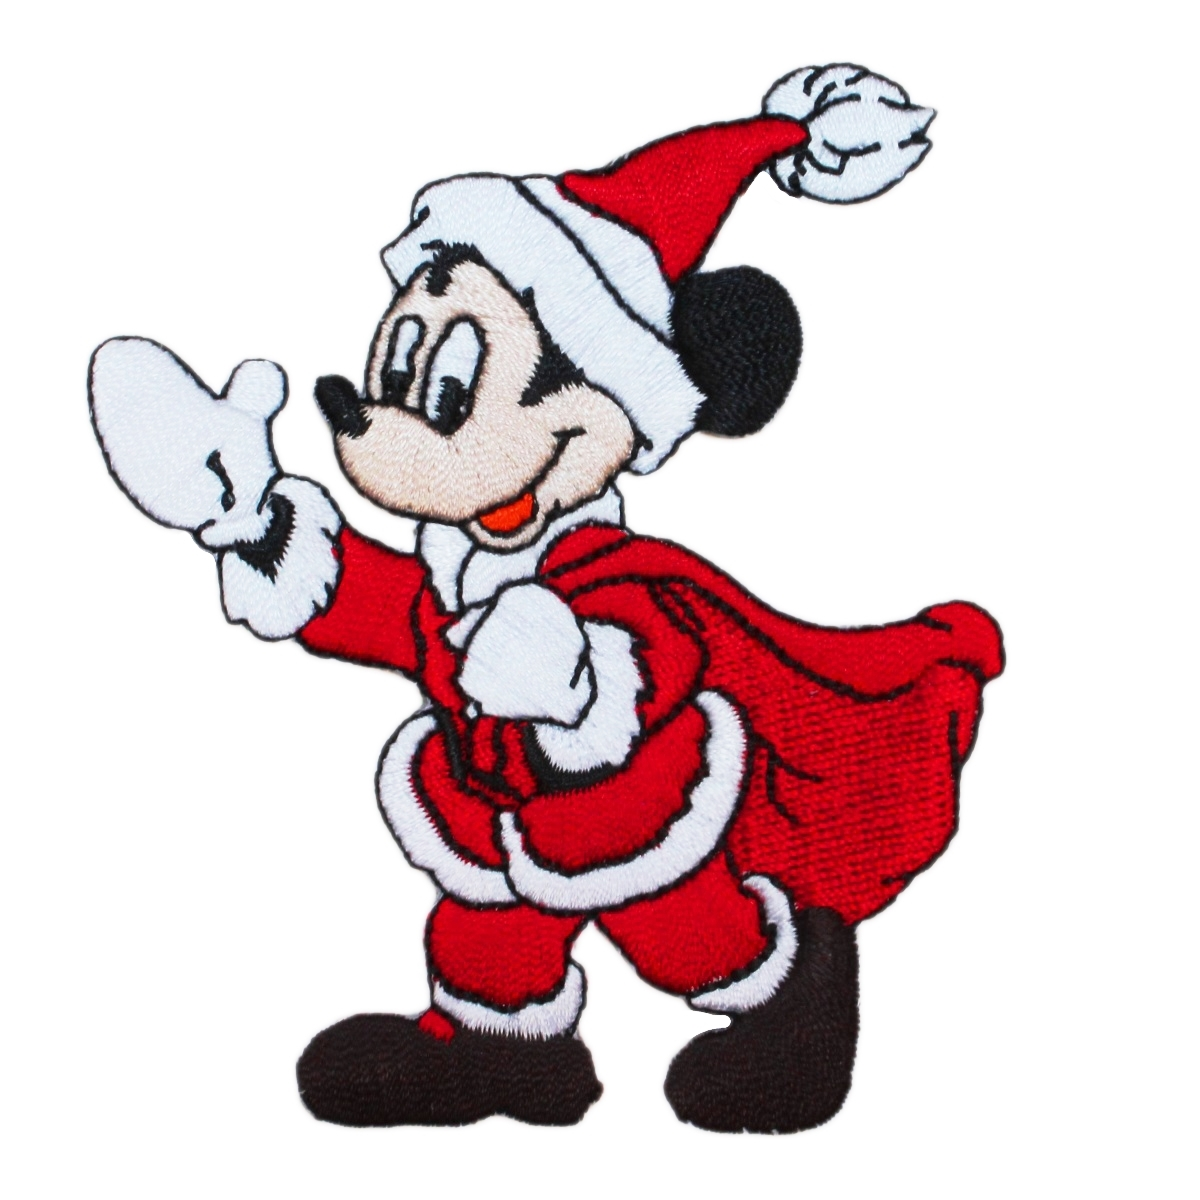 Santa Mickey Mouse Disney Christmas Cartoon Character Iron-On Applique Patch